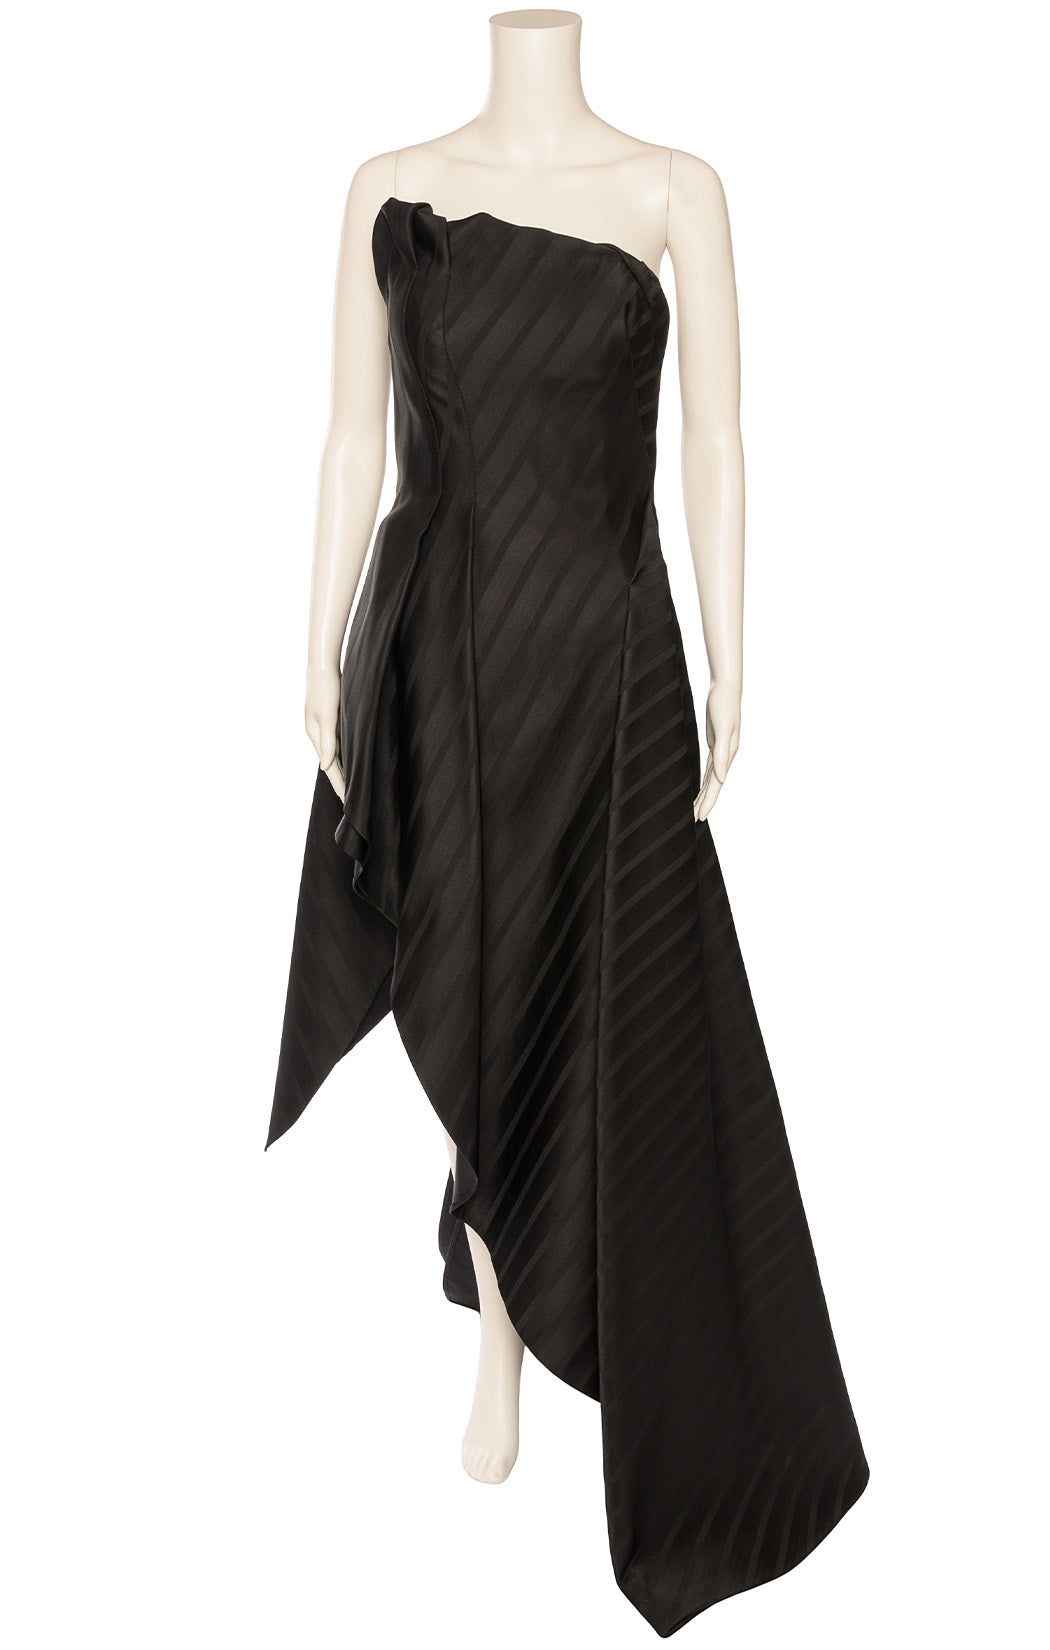 Front view of RUBIN SINGER Long dress Size: 6